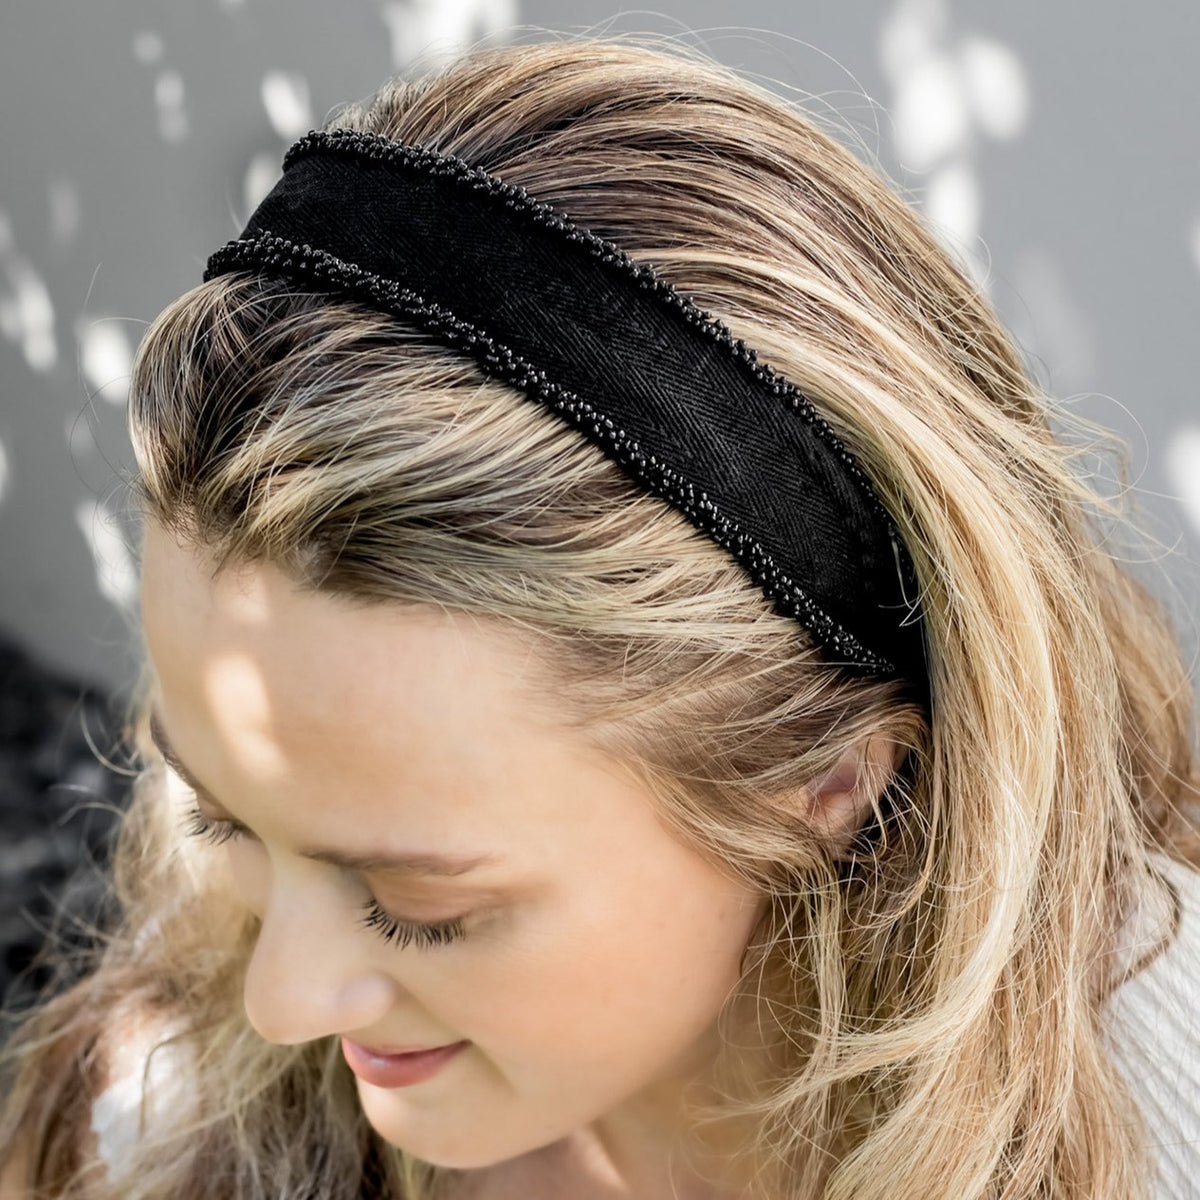 Headbands by IDALIA - Sophie - White Trim